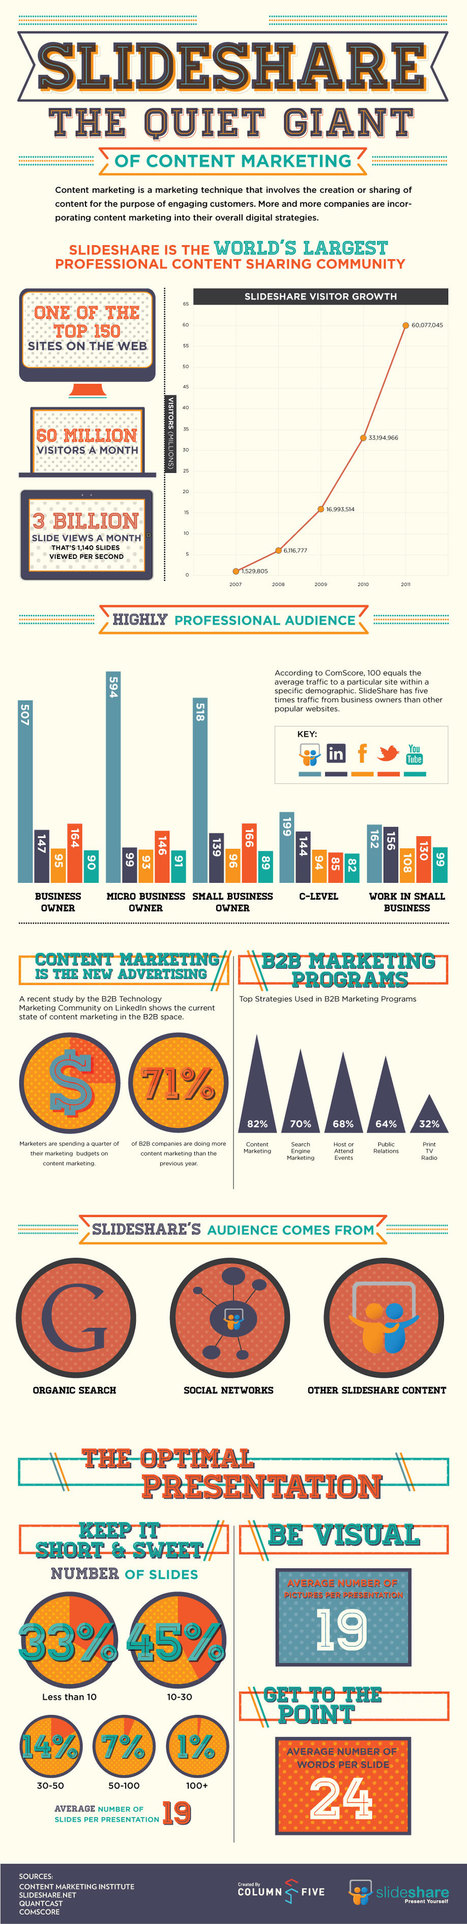 Slideshare Infographic: The Quiet Giant of Content Marketing | The Social Media Learning Lab | Scoop.it